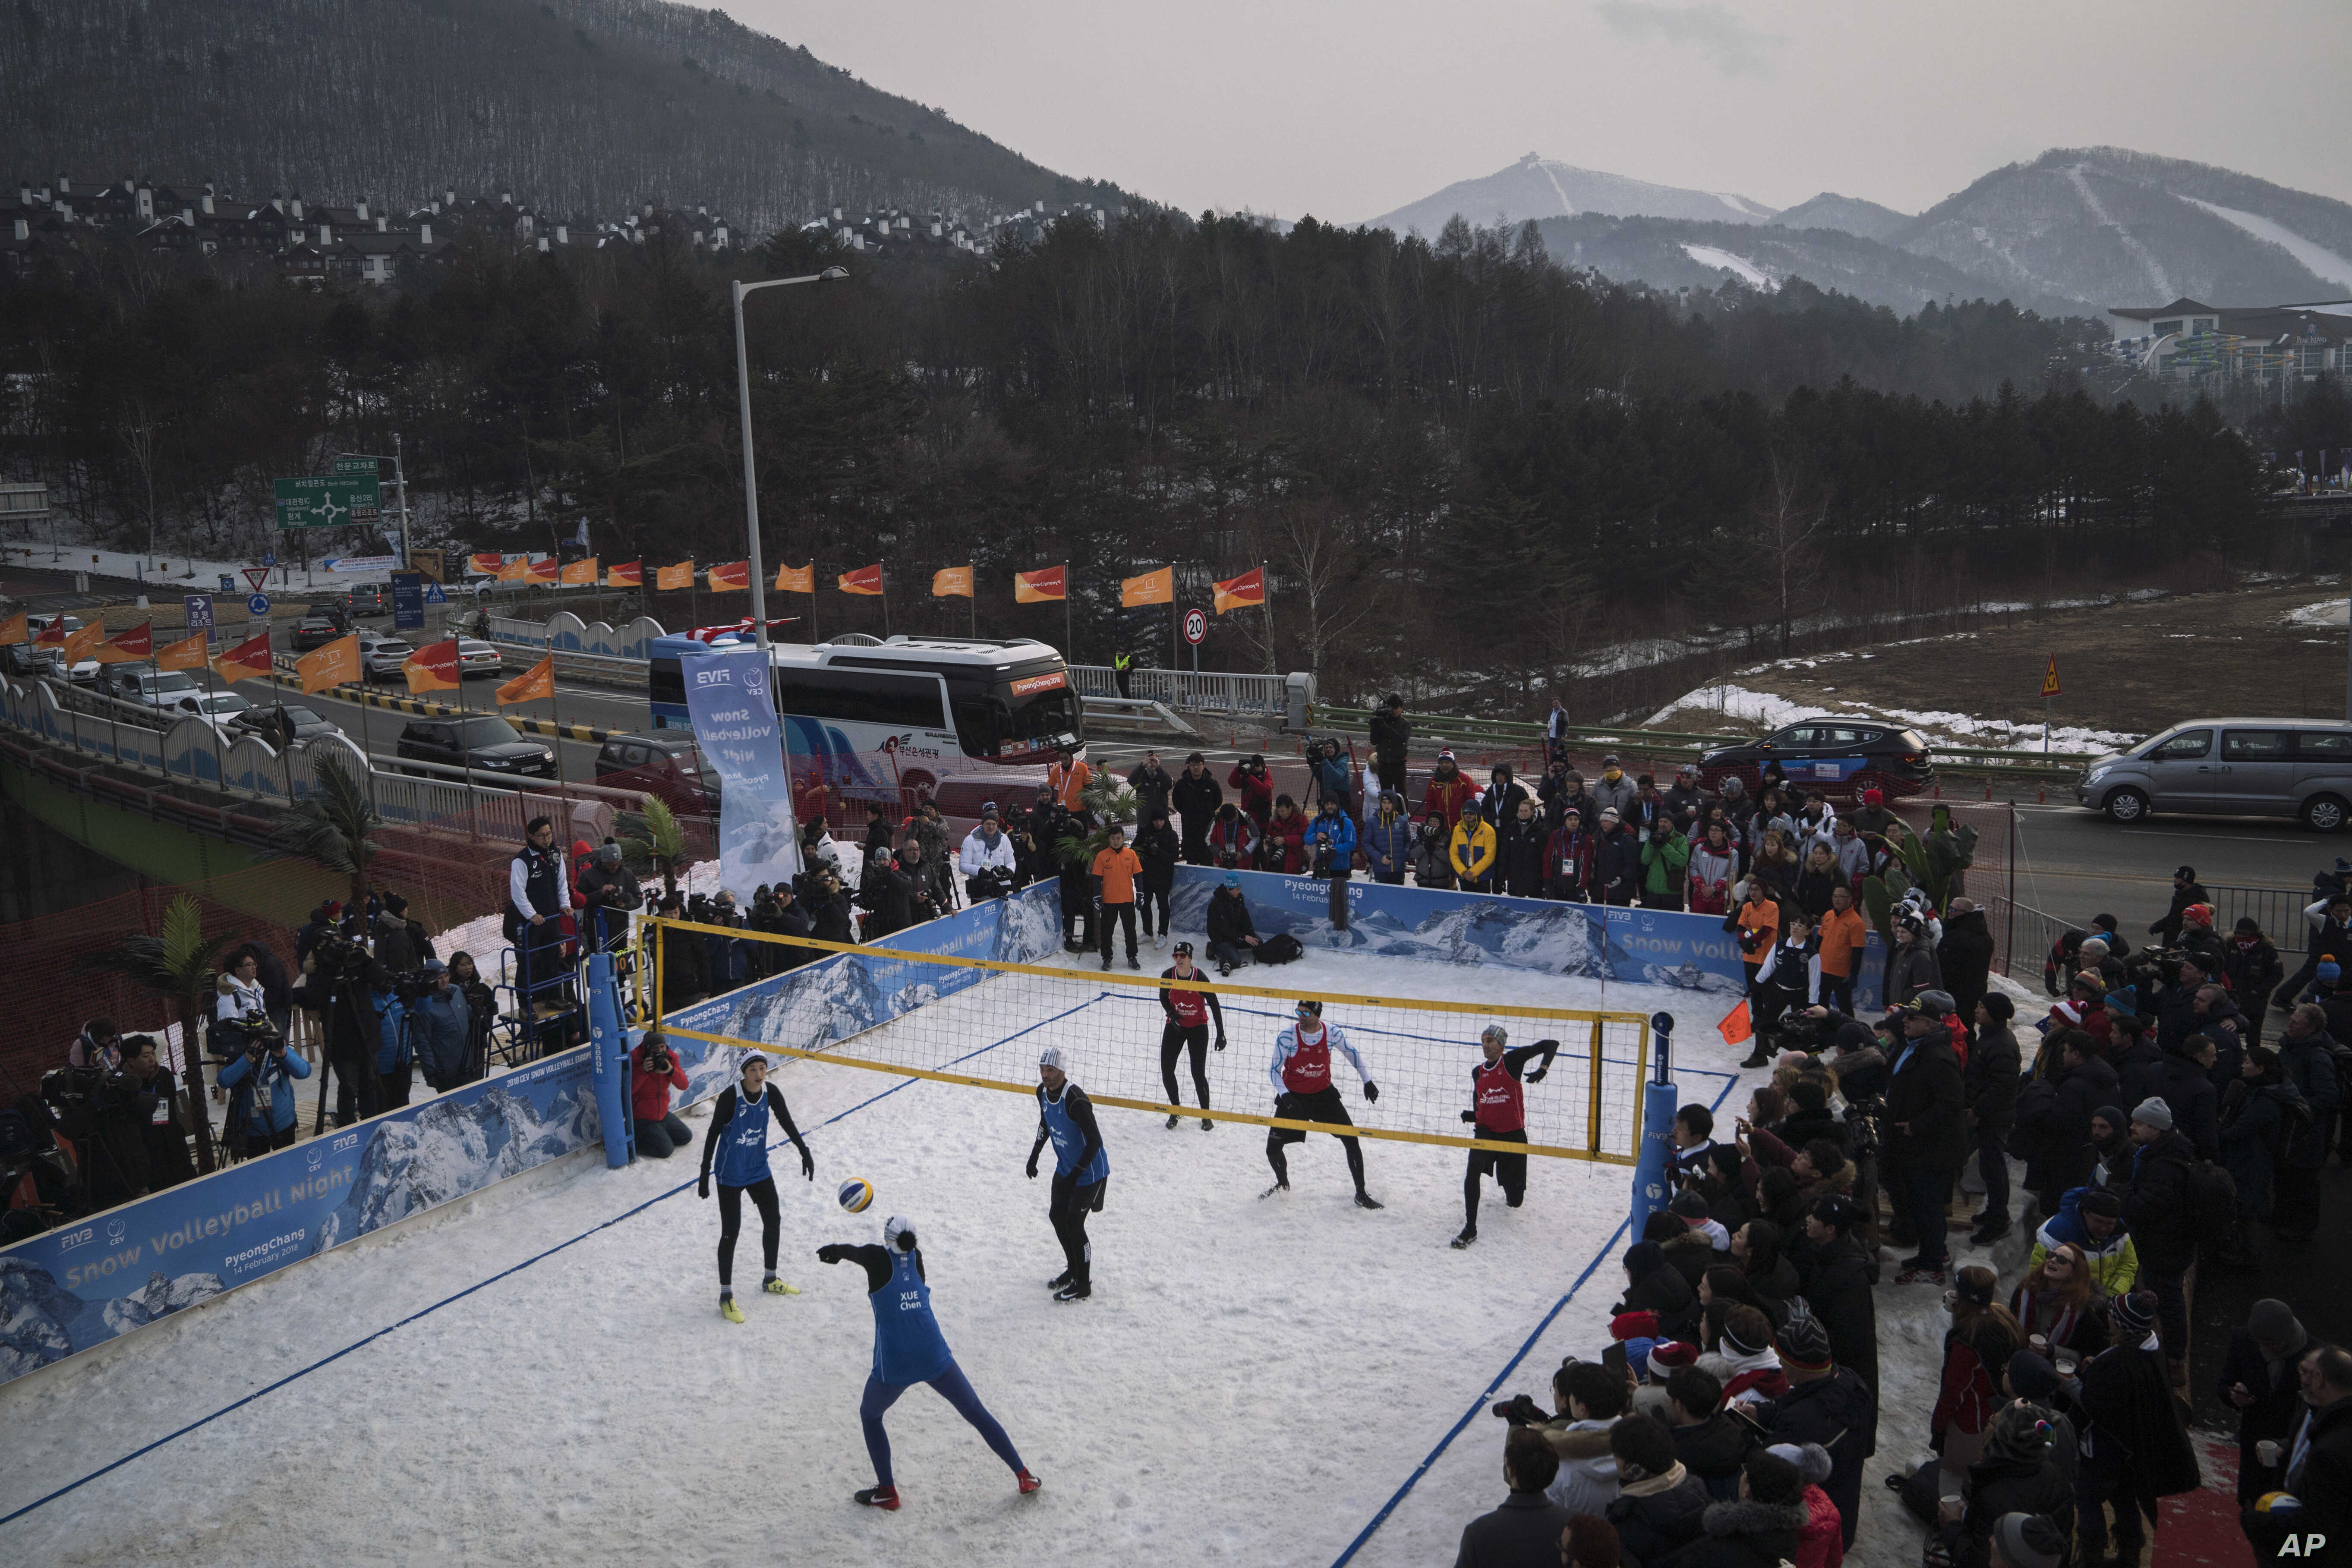 FILE - China's Xue Chen passes the ball during a snow volleyball exhibition match at Austria House in Pyeongchang, South Korea, Feb. 14, 2018.